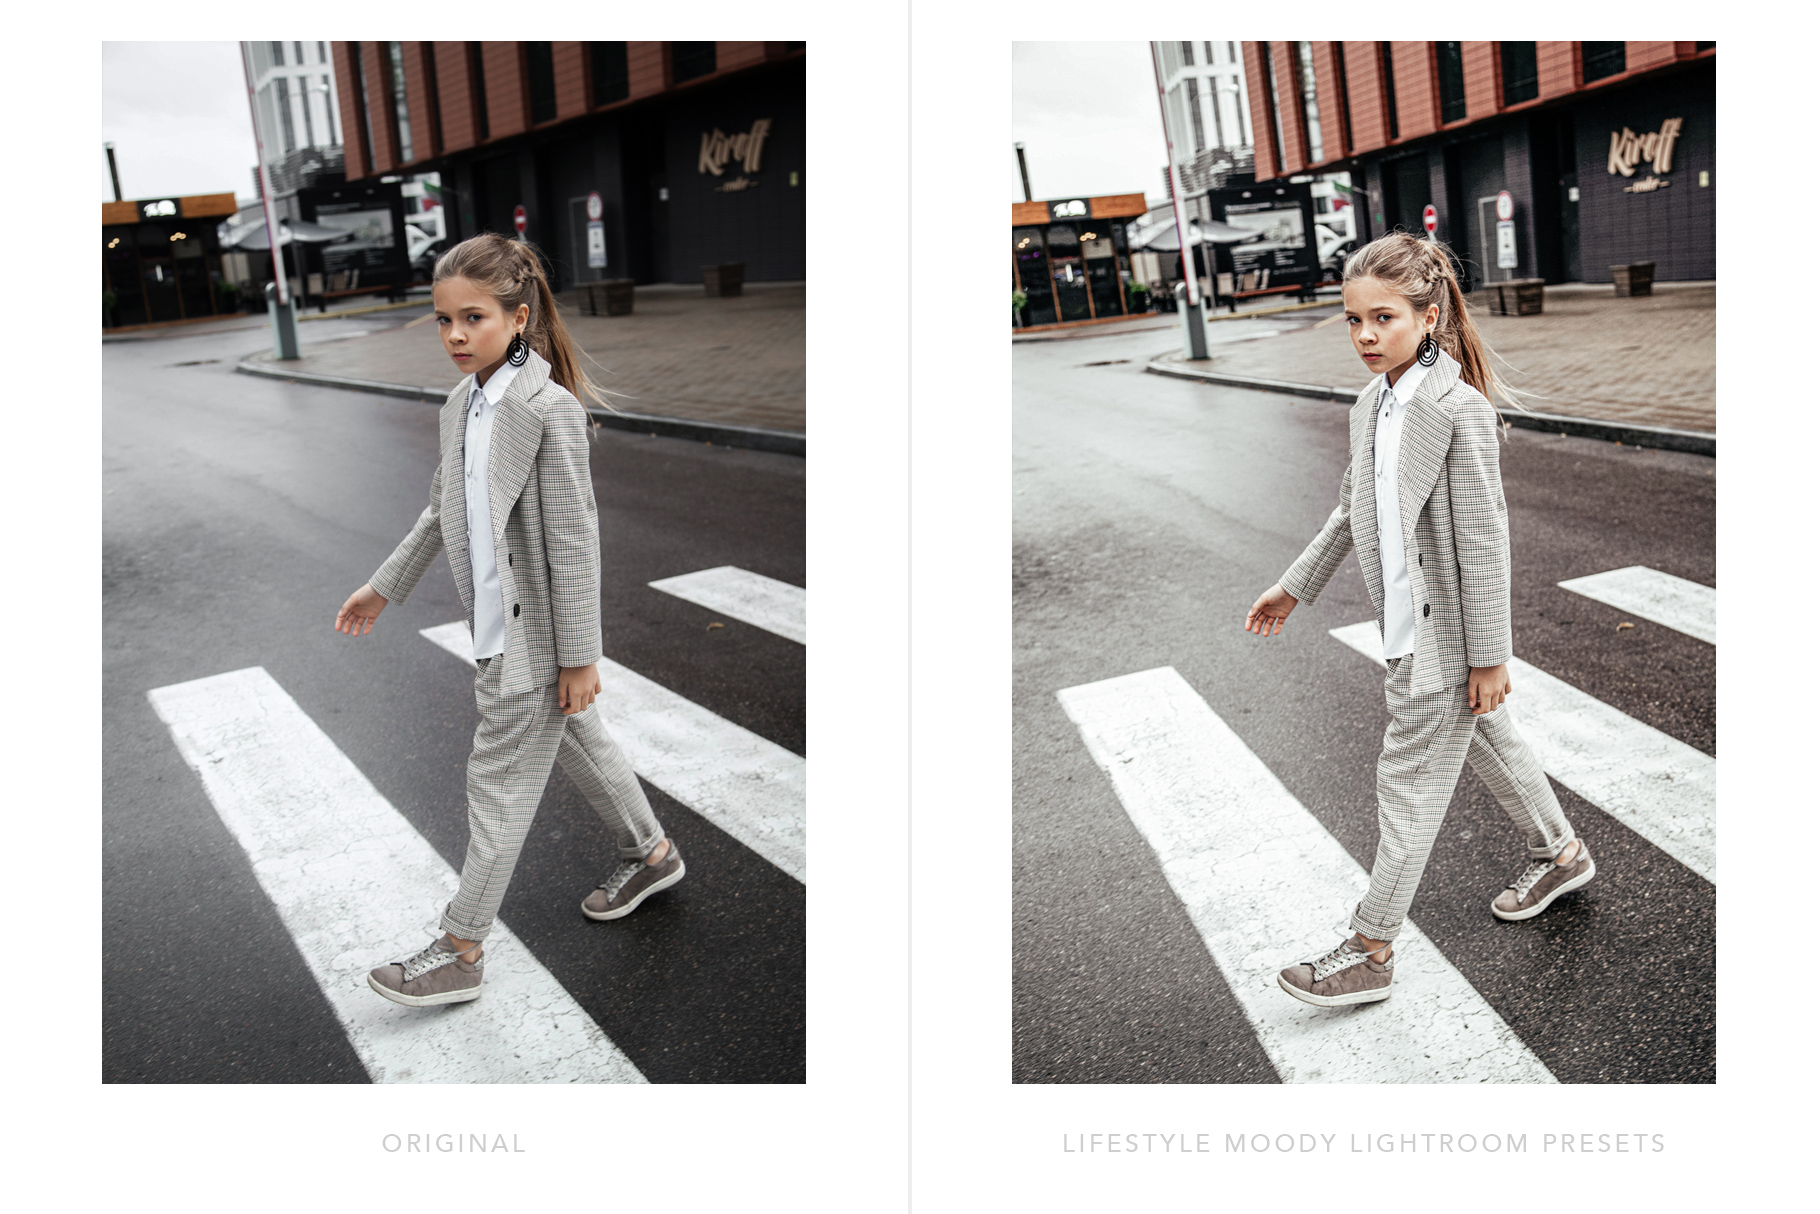 Lifestyle Moody Collection – Lightroom Presets